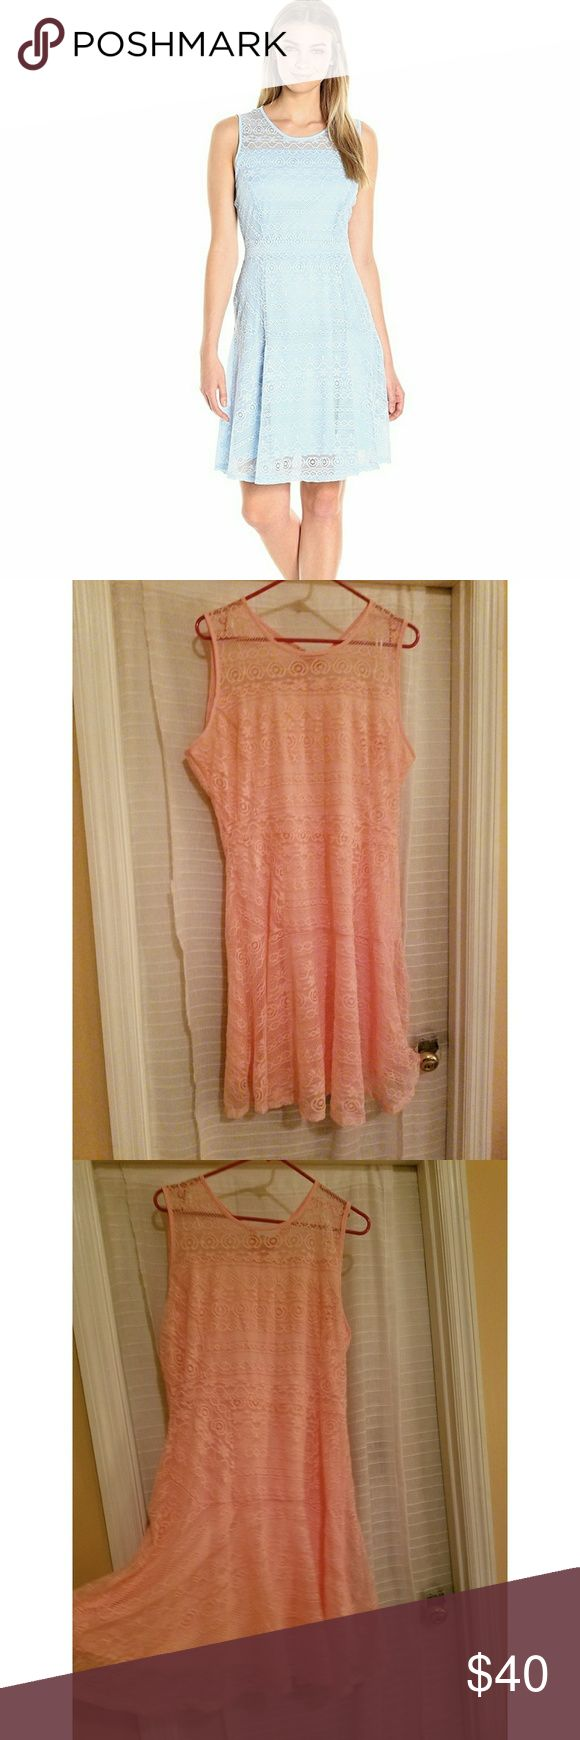 NY Collection spring/summer dress Large Solid sleeveless scoop neck lace fit and flare dress  100% Polyester Made in US  Machine Wash   Solid sleeveless scoop neck lace fit and flare dressGreat for the work place, a night out, and even every day wear.  Color is a peachy pink Nycollection Dresses